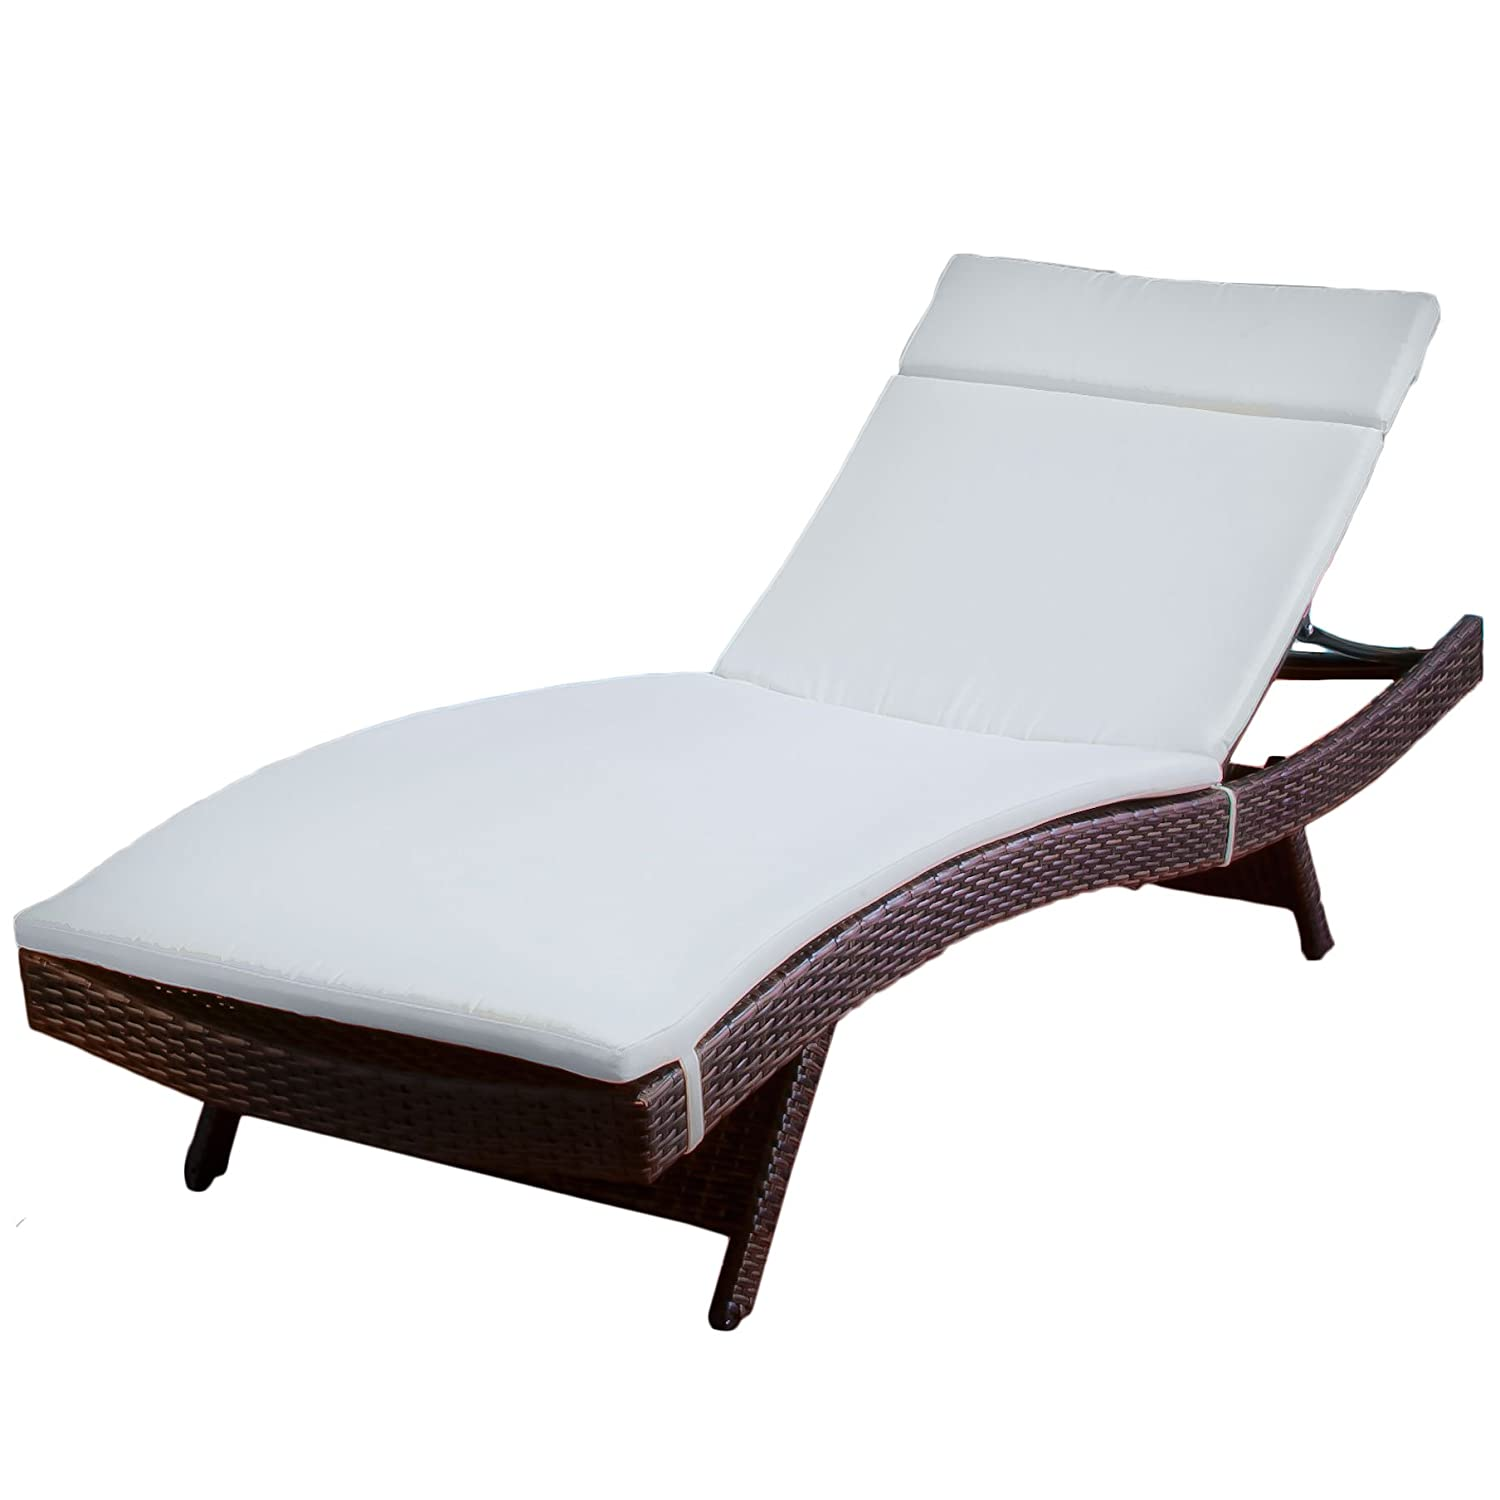 Webbed aluminum folding chaise lounge chairs for Chaise aluminium